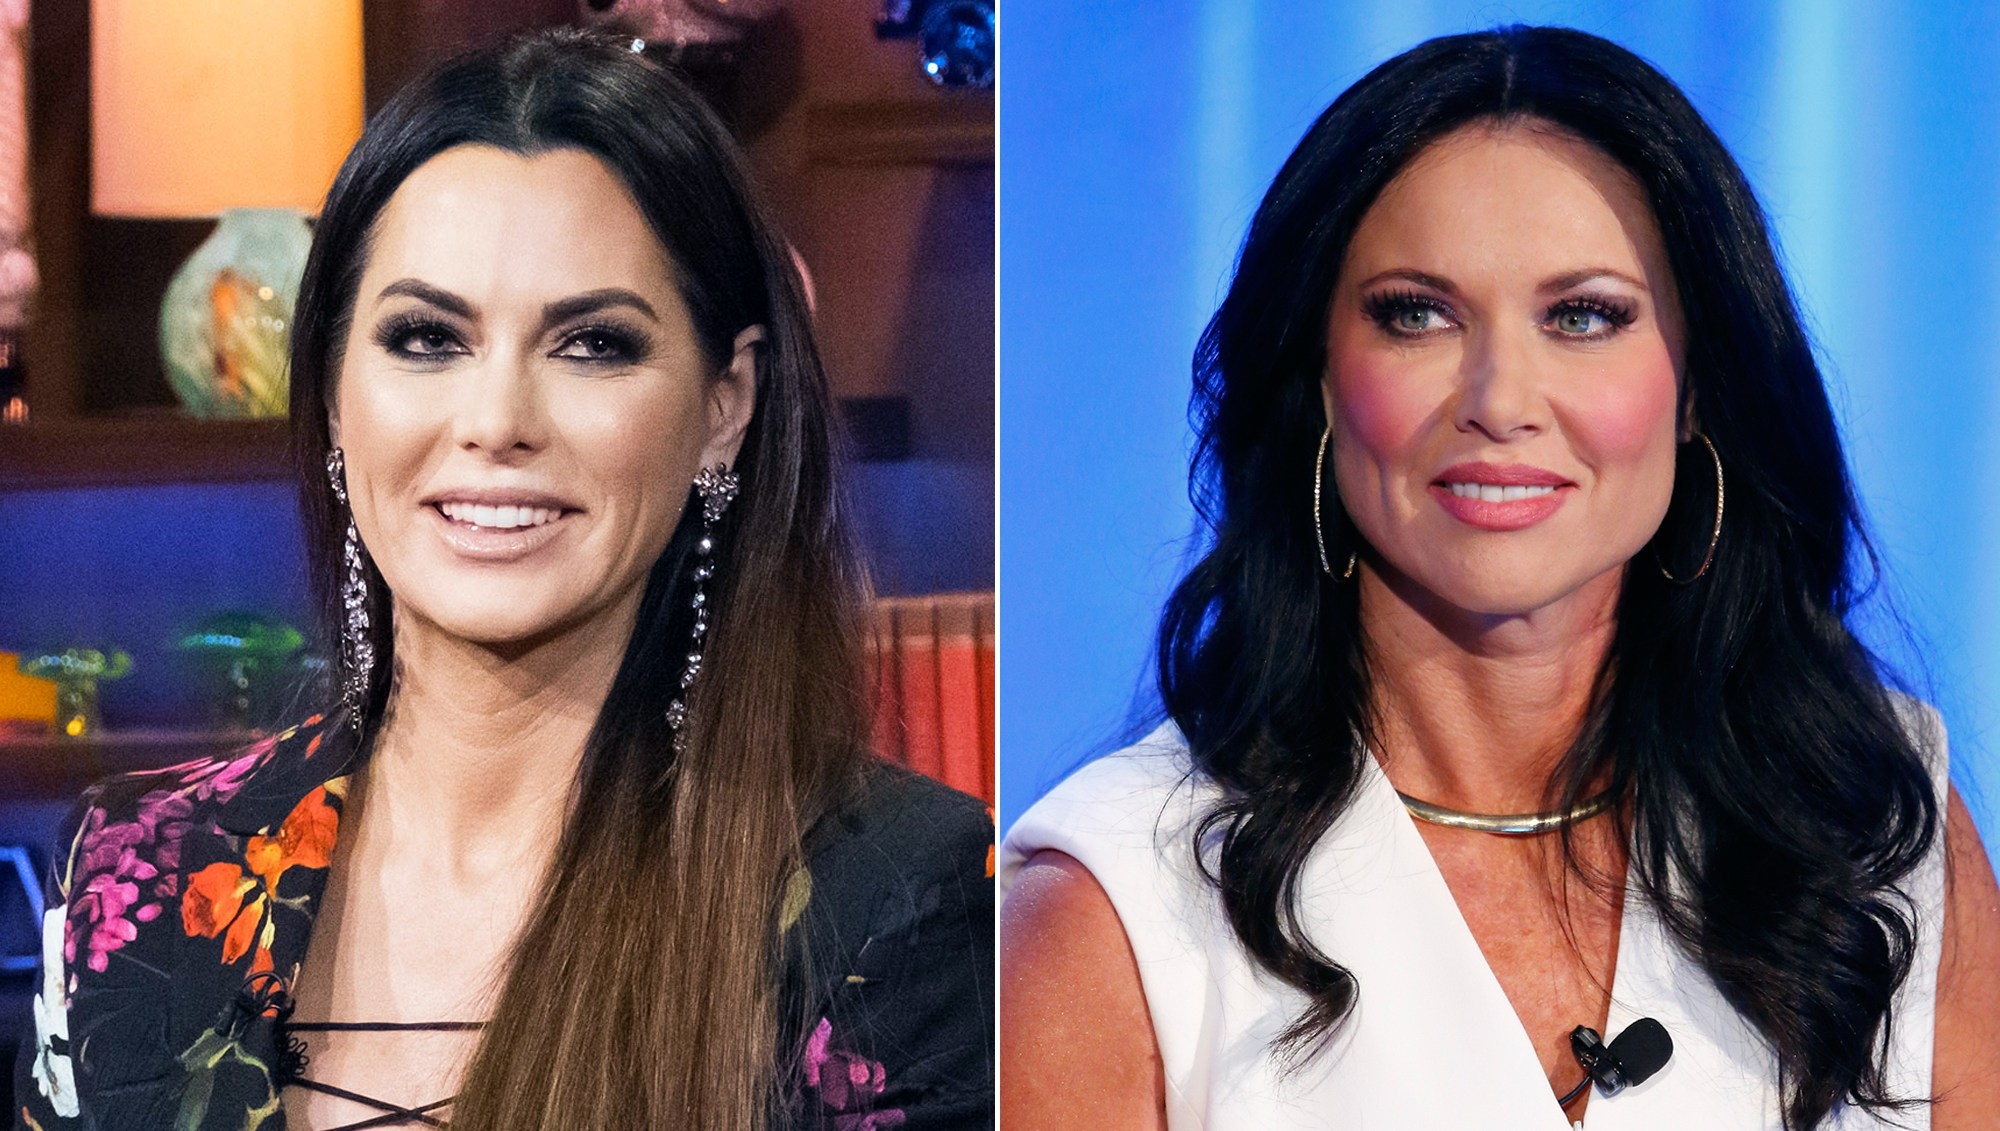 'RHOD' Star D'Andra Simmons Reveals Her and LeeAnne Locken Are 'Taking a Break' From Their Friendship